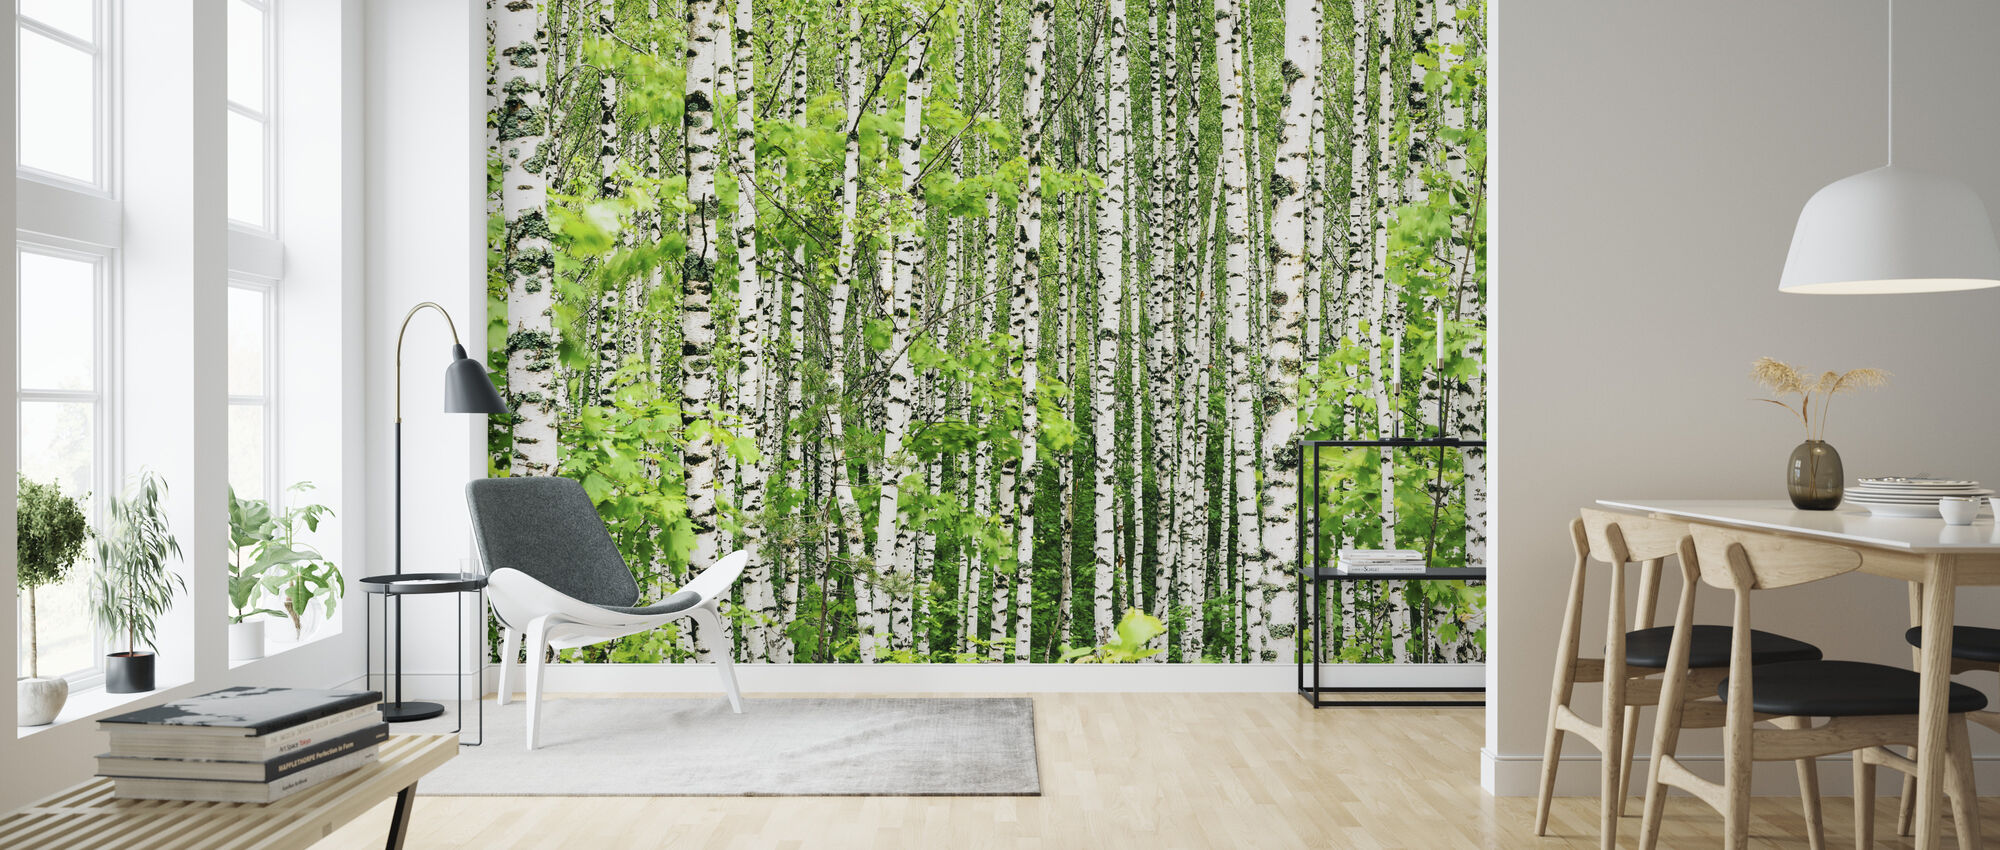 Birch Trees - Wallpaper - Living Room